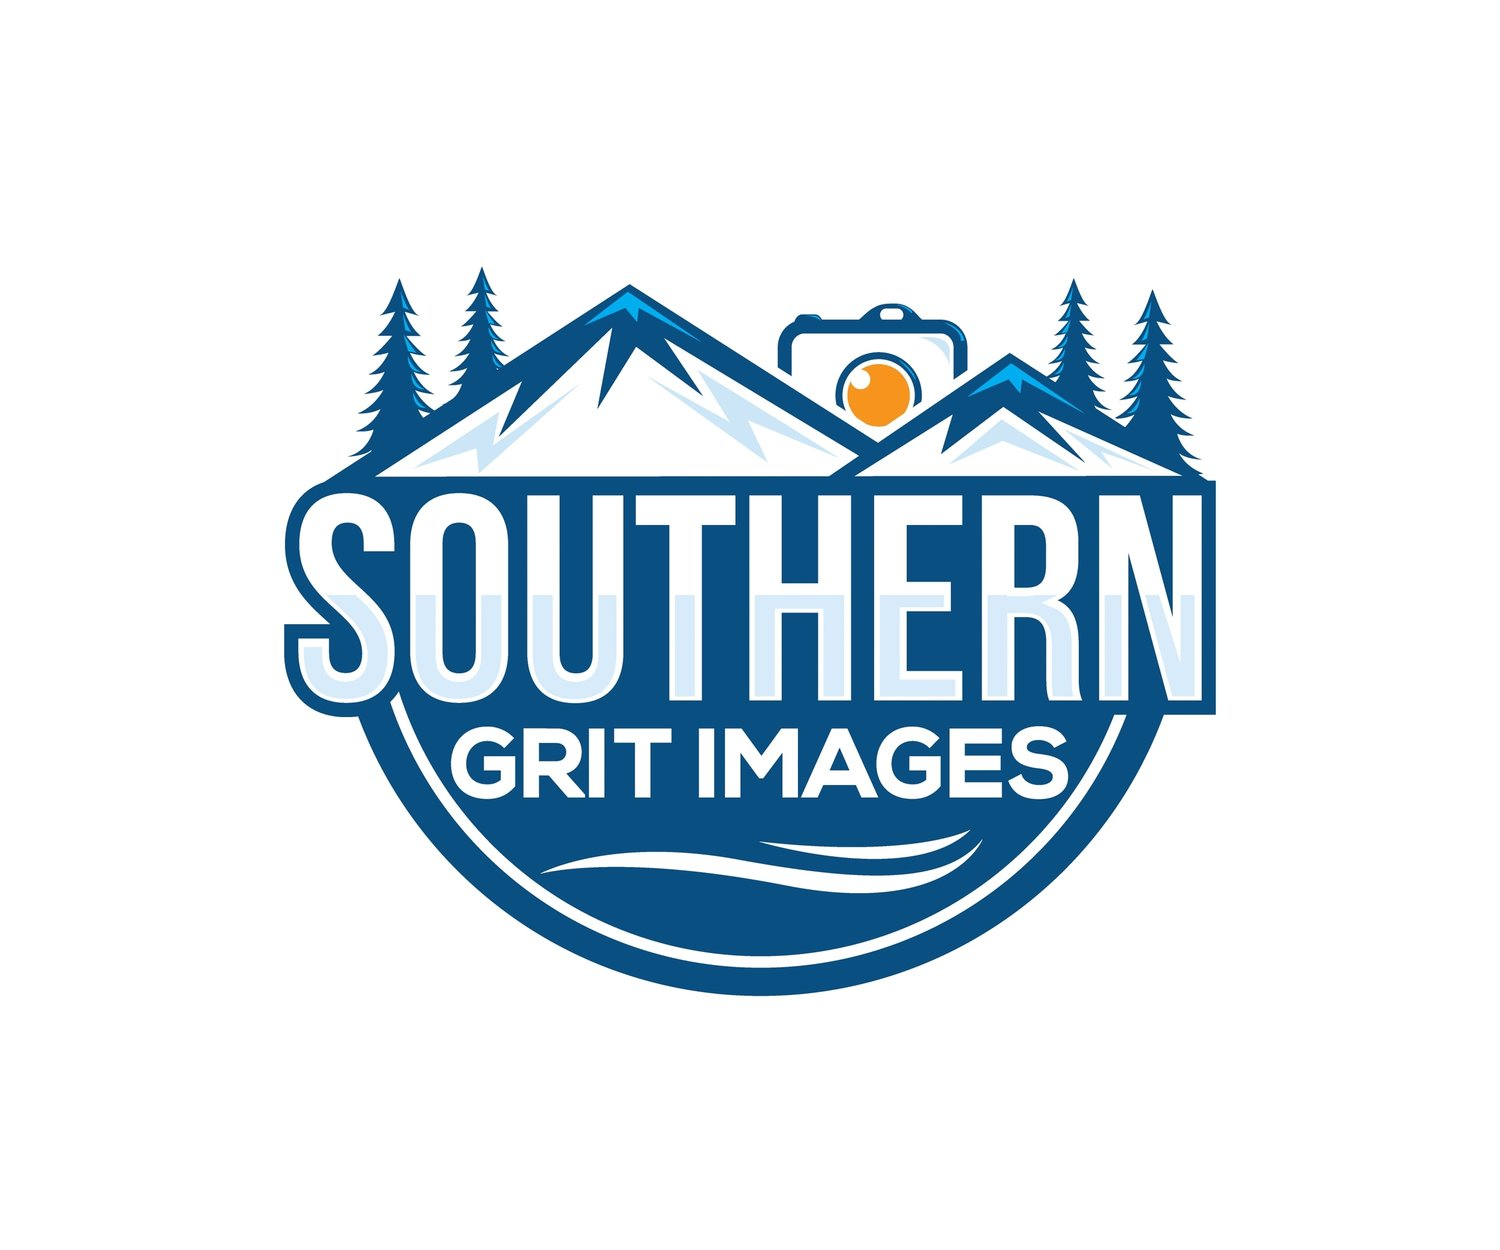 Southern Grit Images